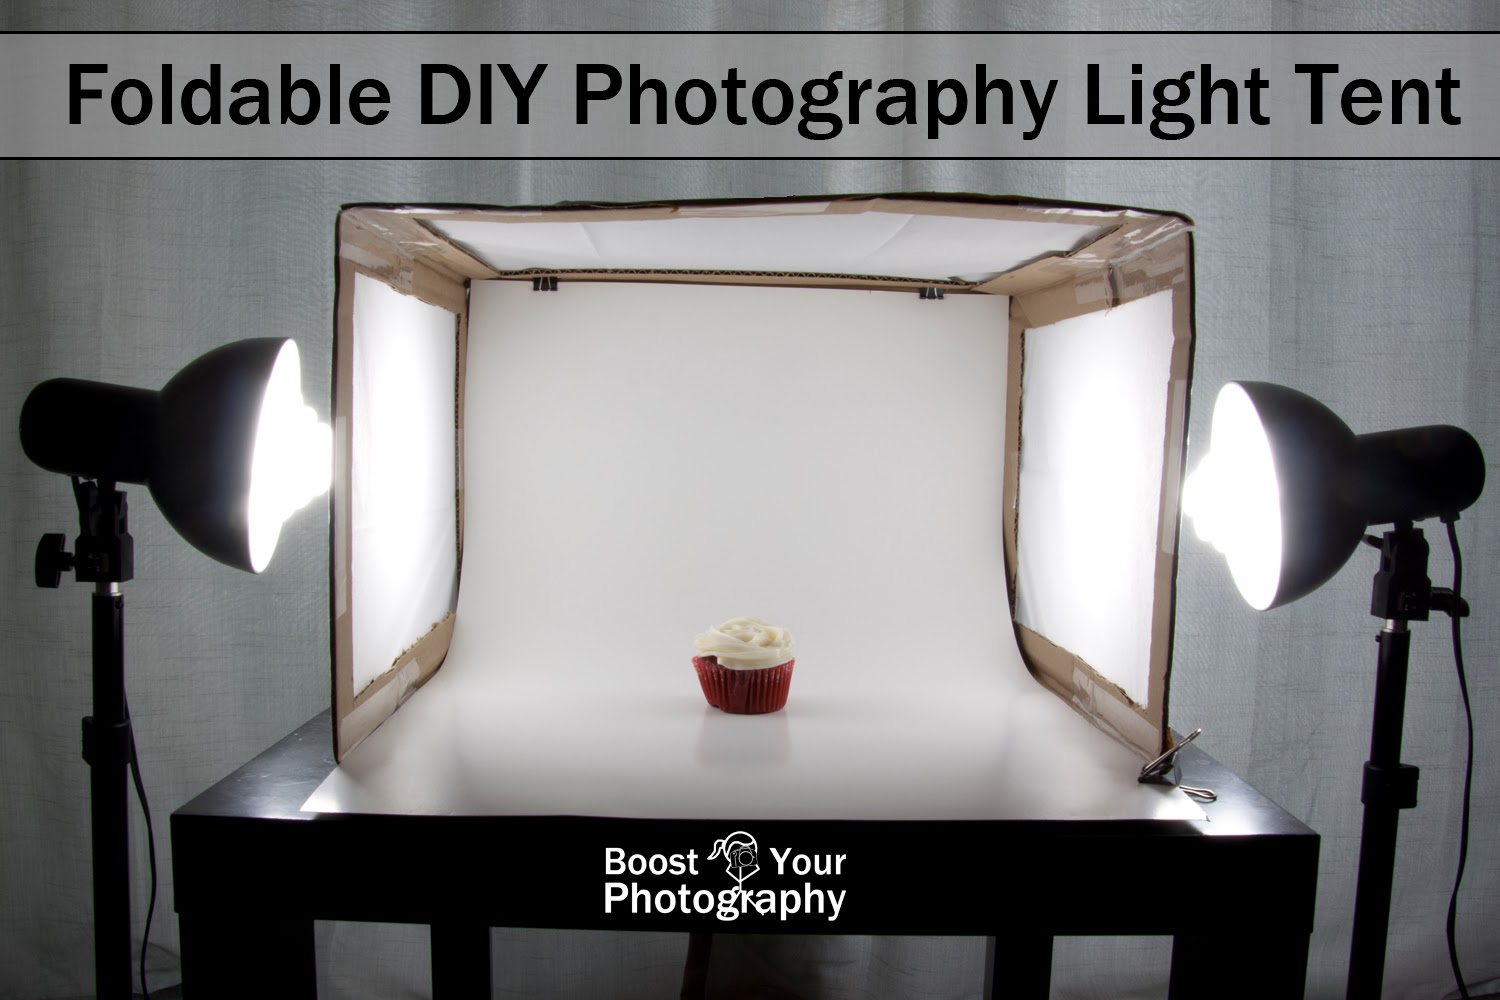 DIY Photography Light Tent Boost Your Photography